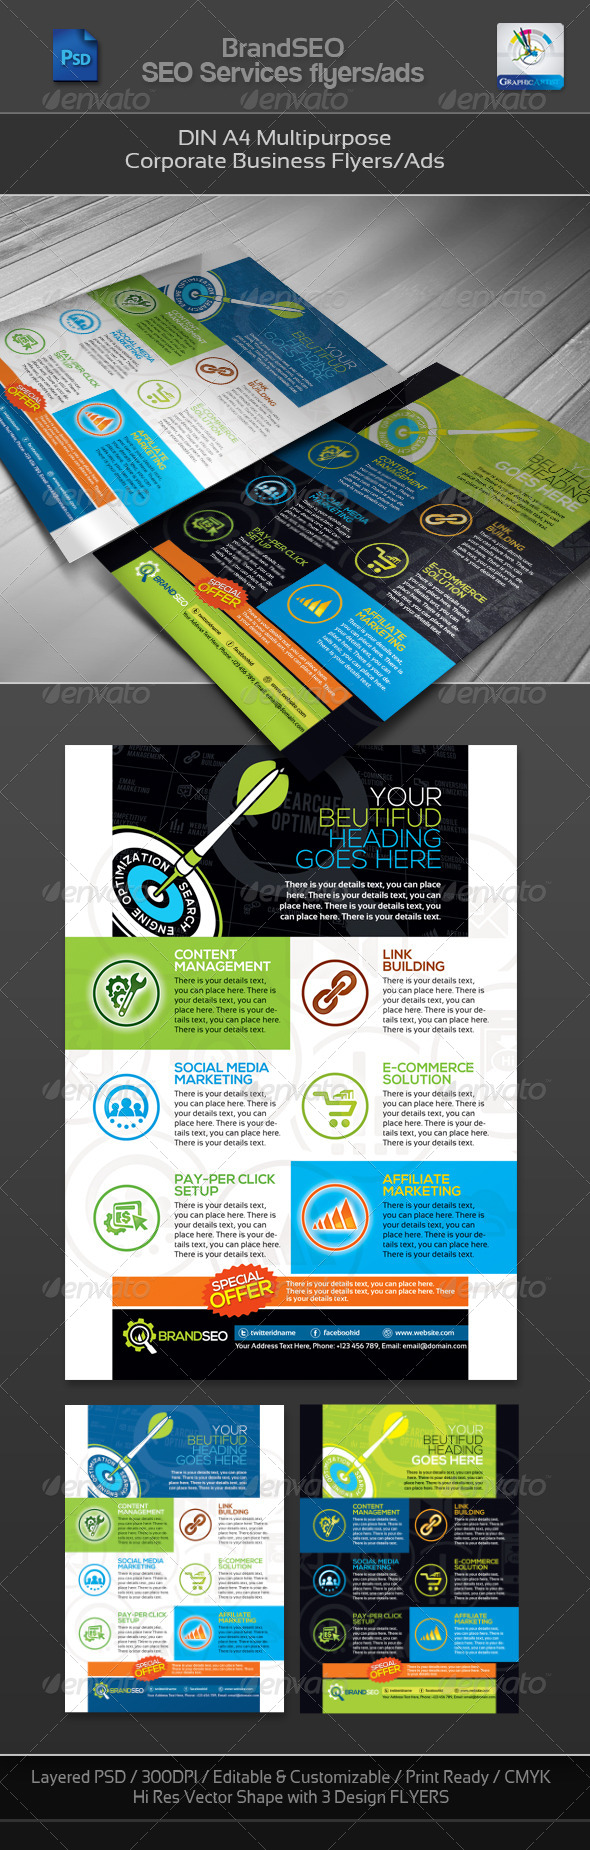 BrandSEO Corporate SEO Business Flyer/Ad - Corporate Flyers